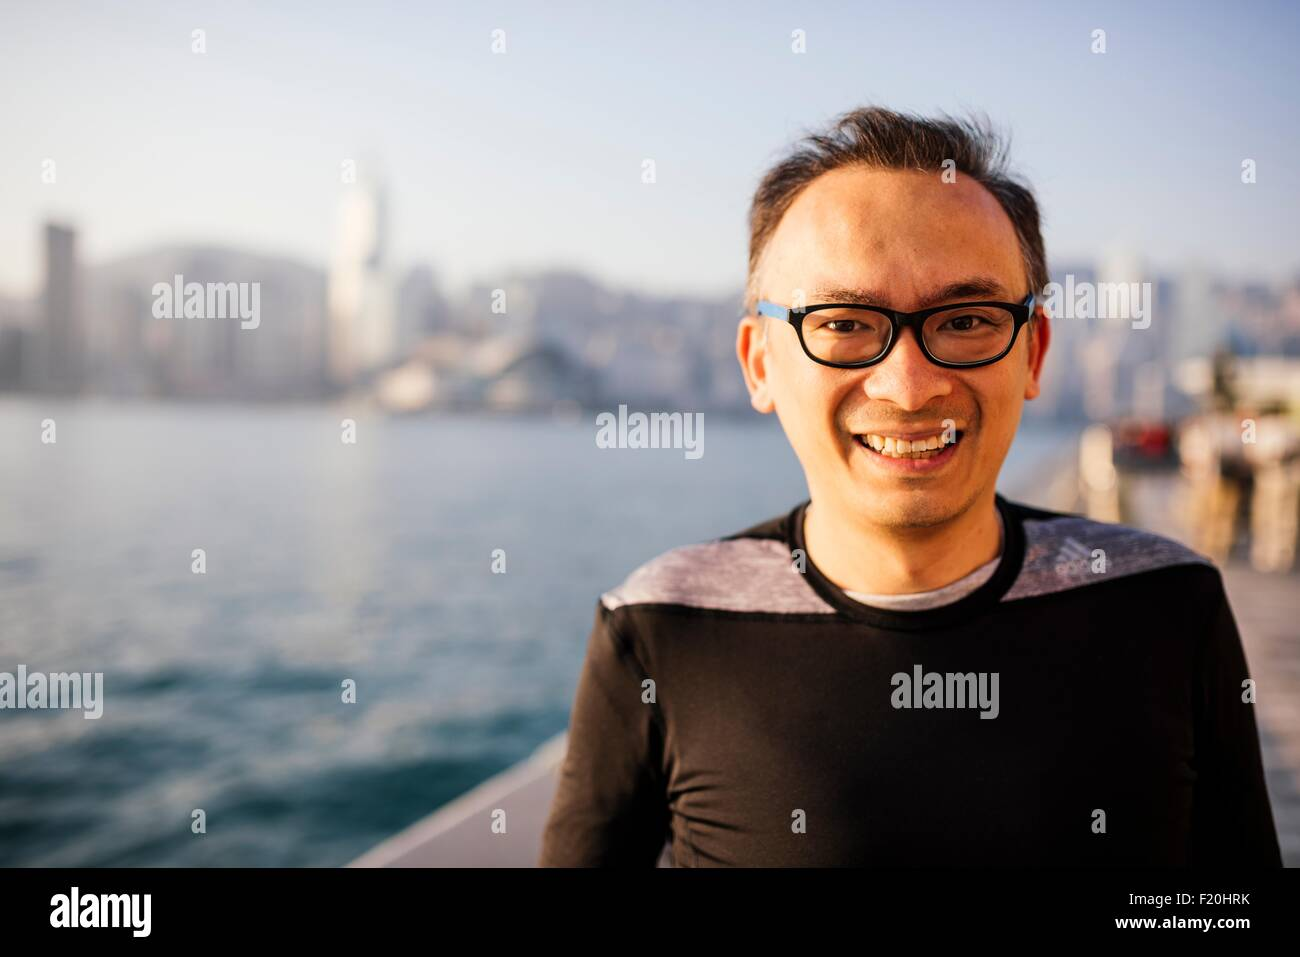 Portrait of mid adult man wearing glasses en face de l'eau, looking at camera smiling Photo Stock